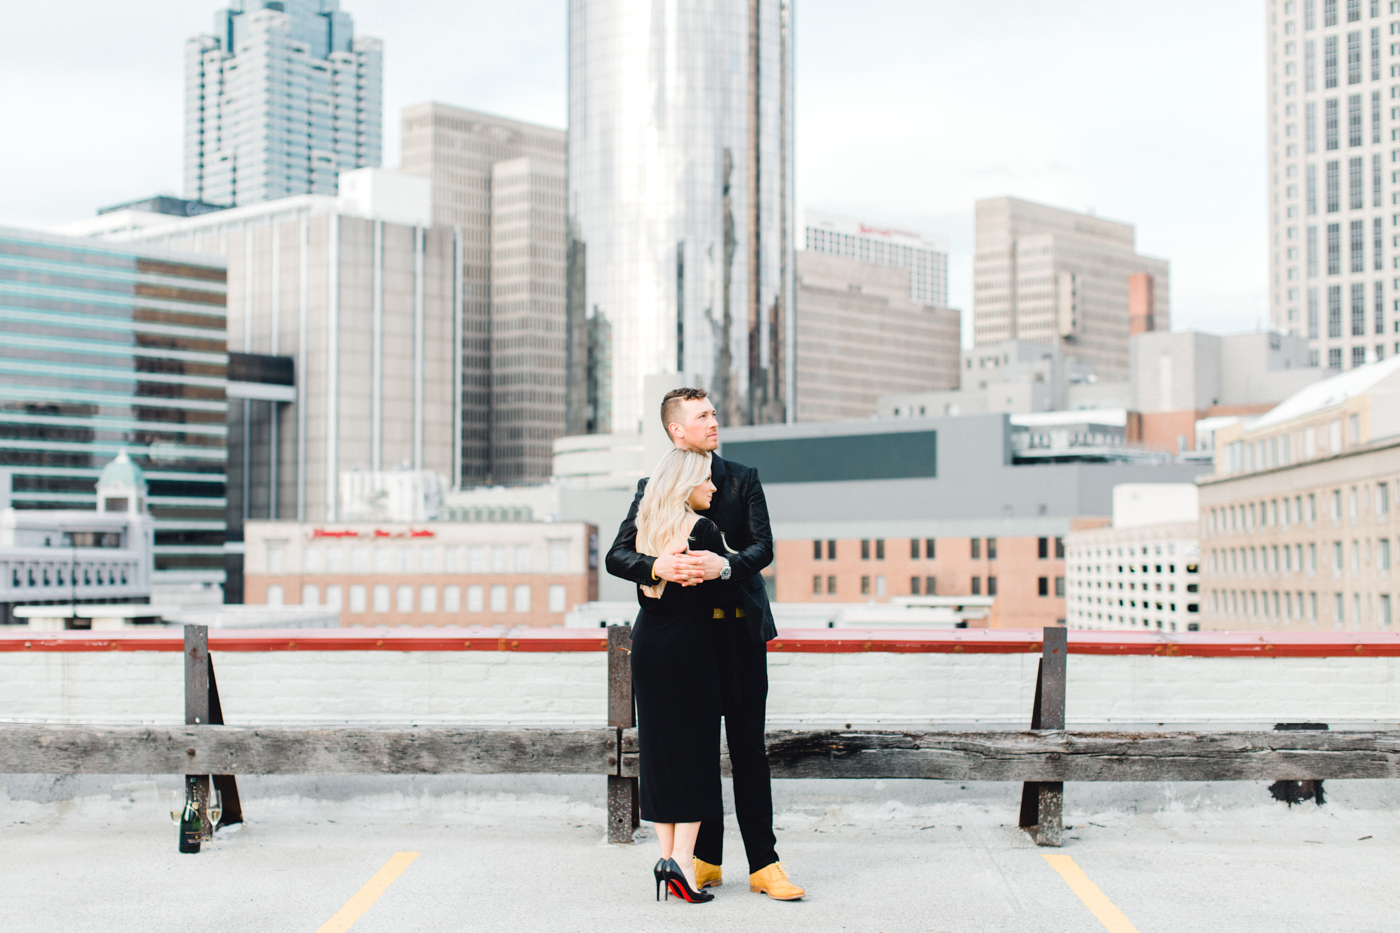 four corners photography best atlanta wedding photographer downtown atlanta engagement session engagement proposal ventanas downtown atlanta wedding atlanta wedding photographer-17.jpg